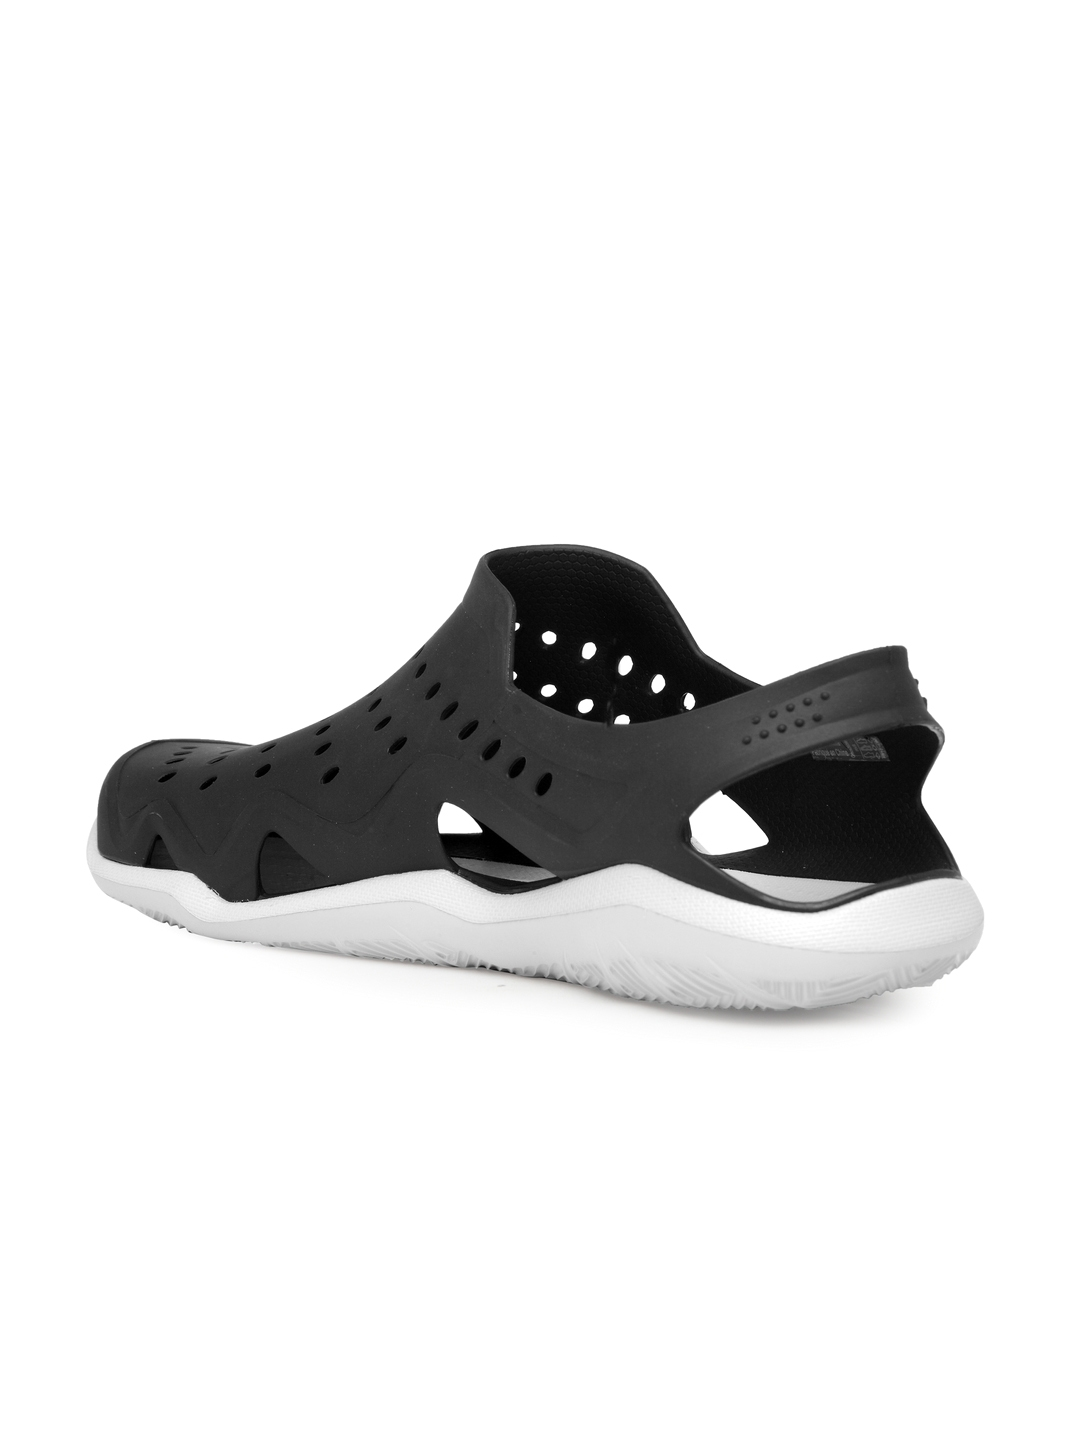 8b76f4d359fd4f Buy Crocs Men Black Swiftwater Wave M Clogs - Sandals for Men ...